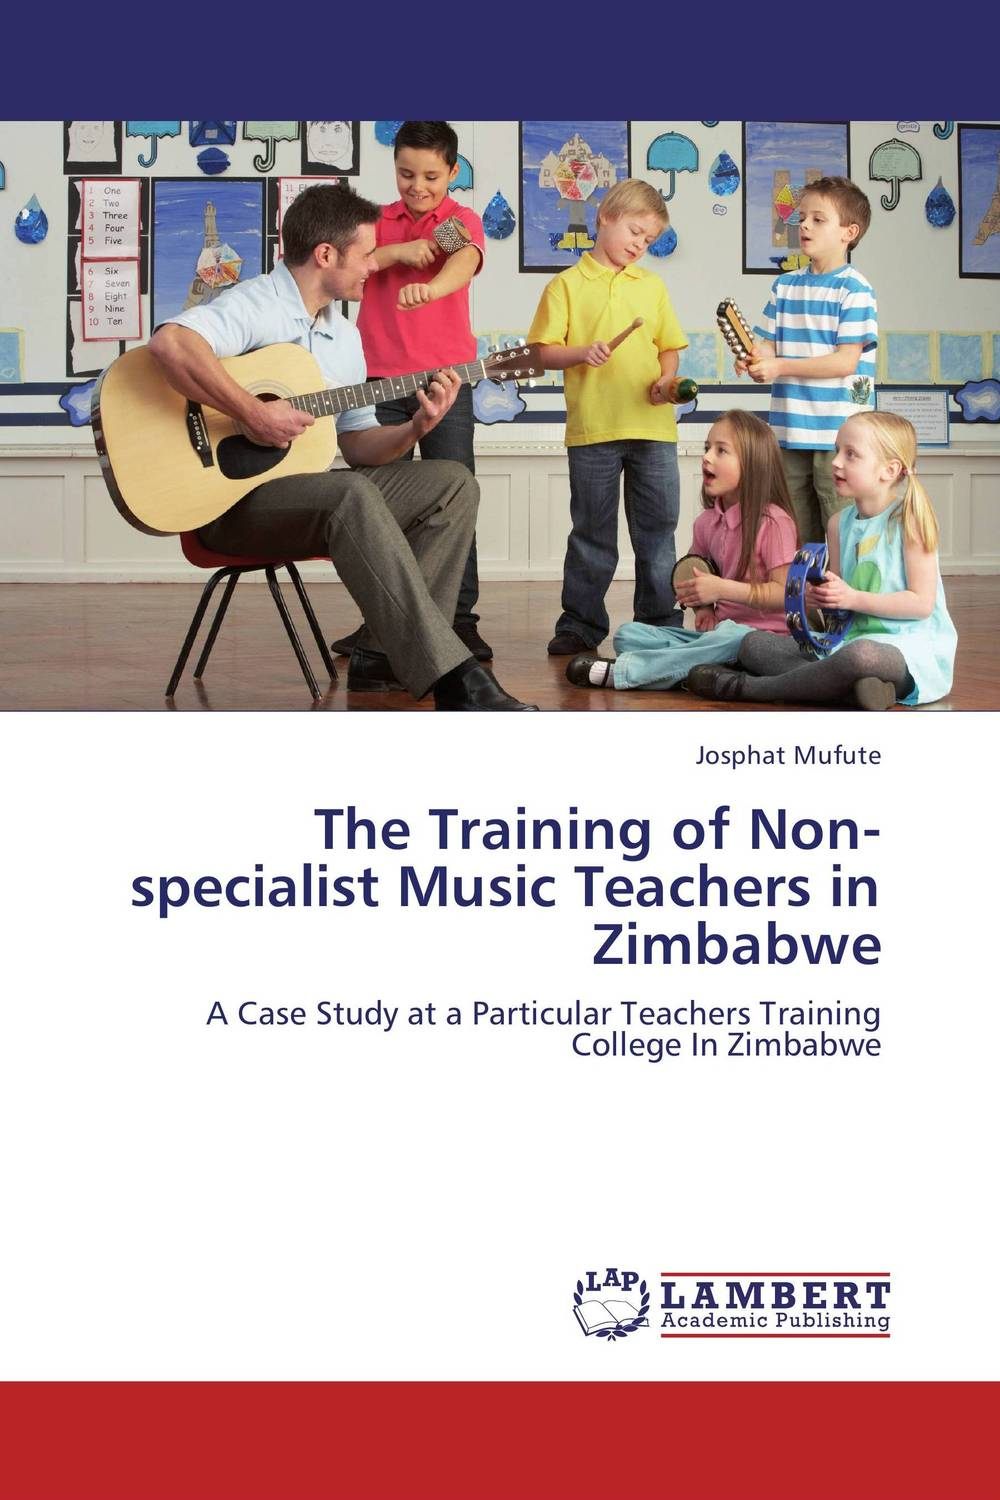 The Training of Non-specialist Music Teachers in Zimbabwe